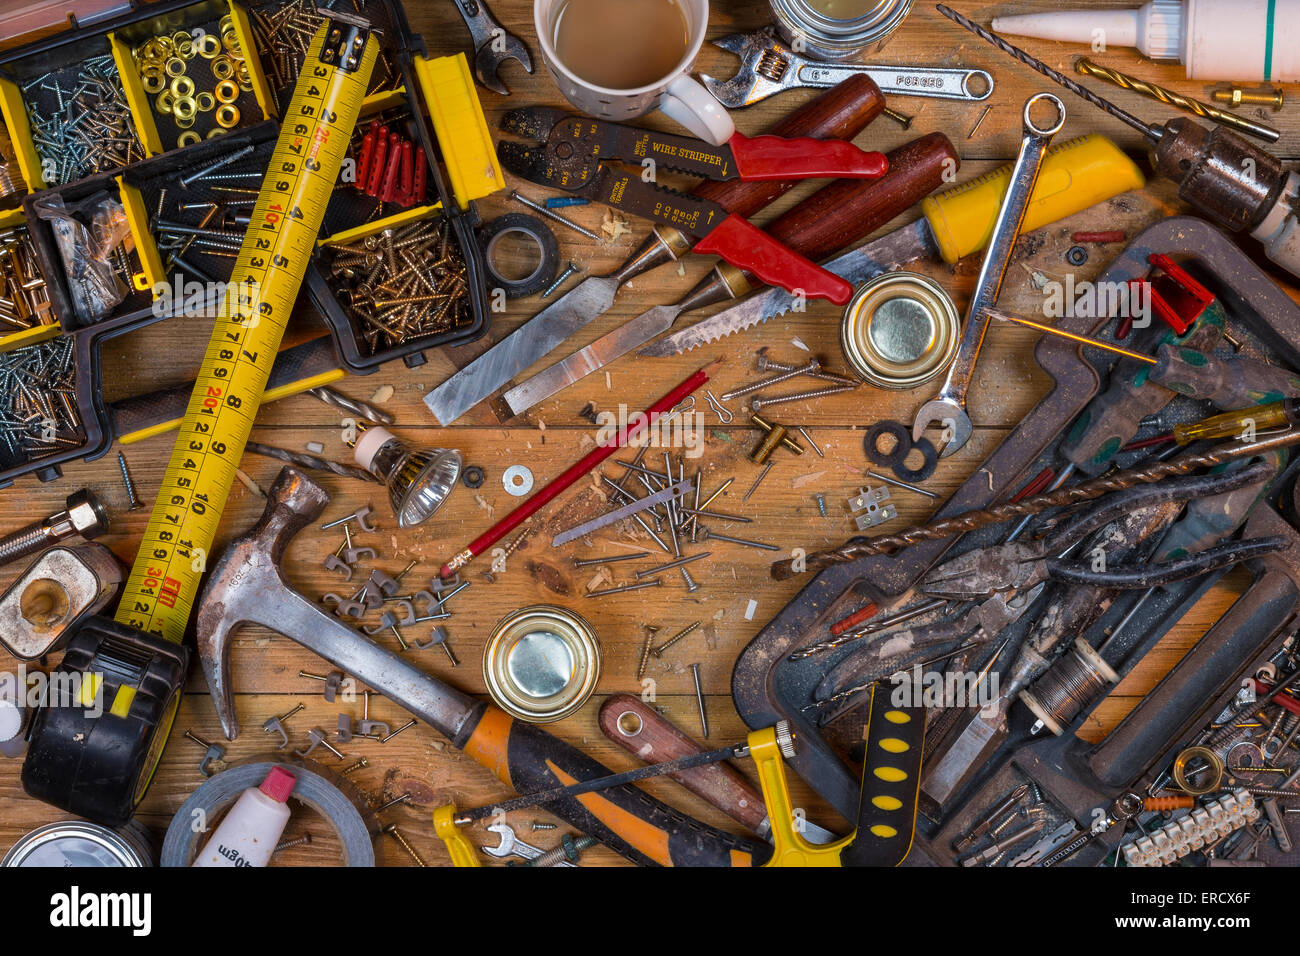 Remarkable Home Maintenance An Untidy Workbench Full Of Dusty Old Squirreltailoven Fun Painted Chair Ideas Images Squirreltailovenorg